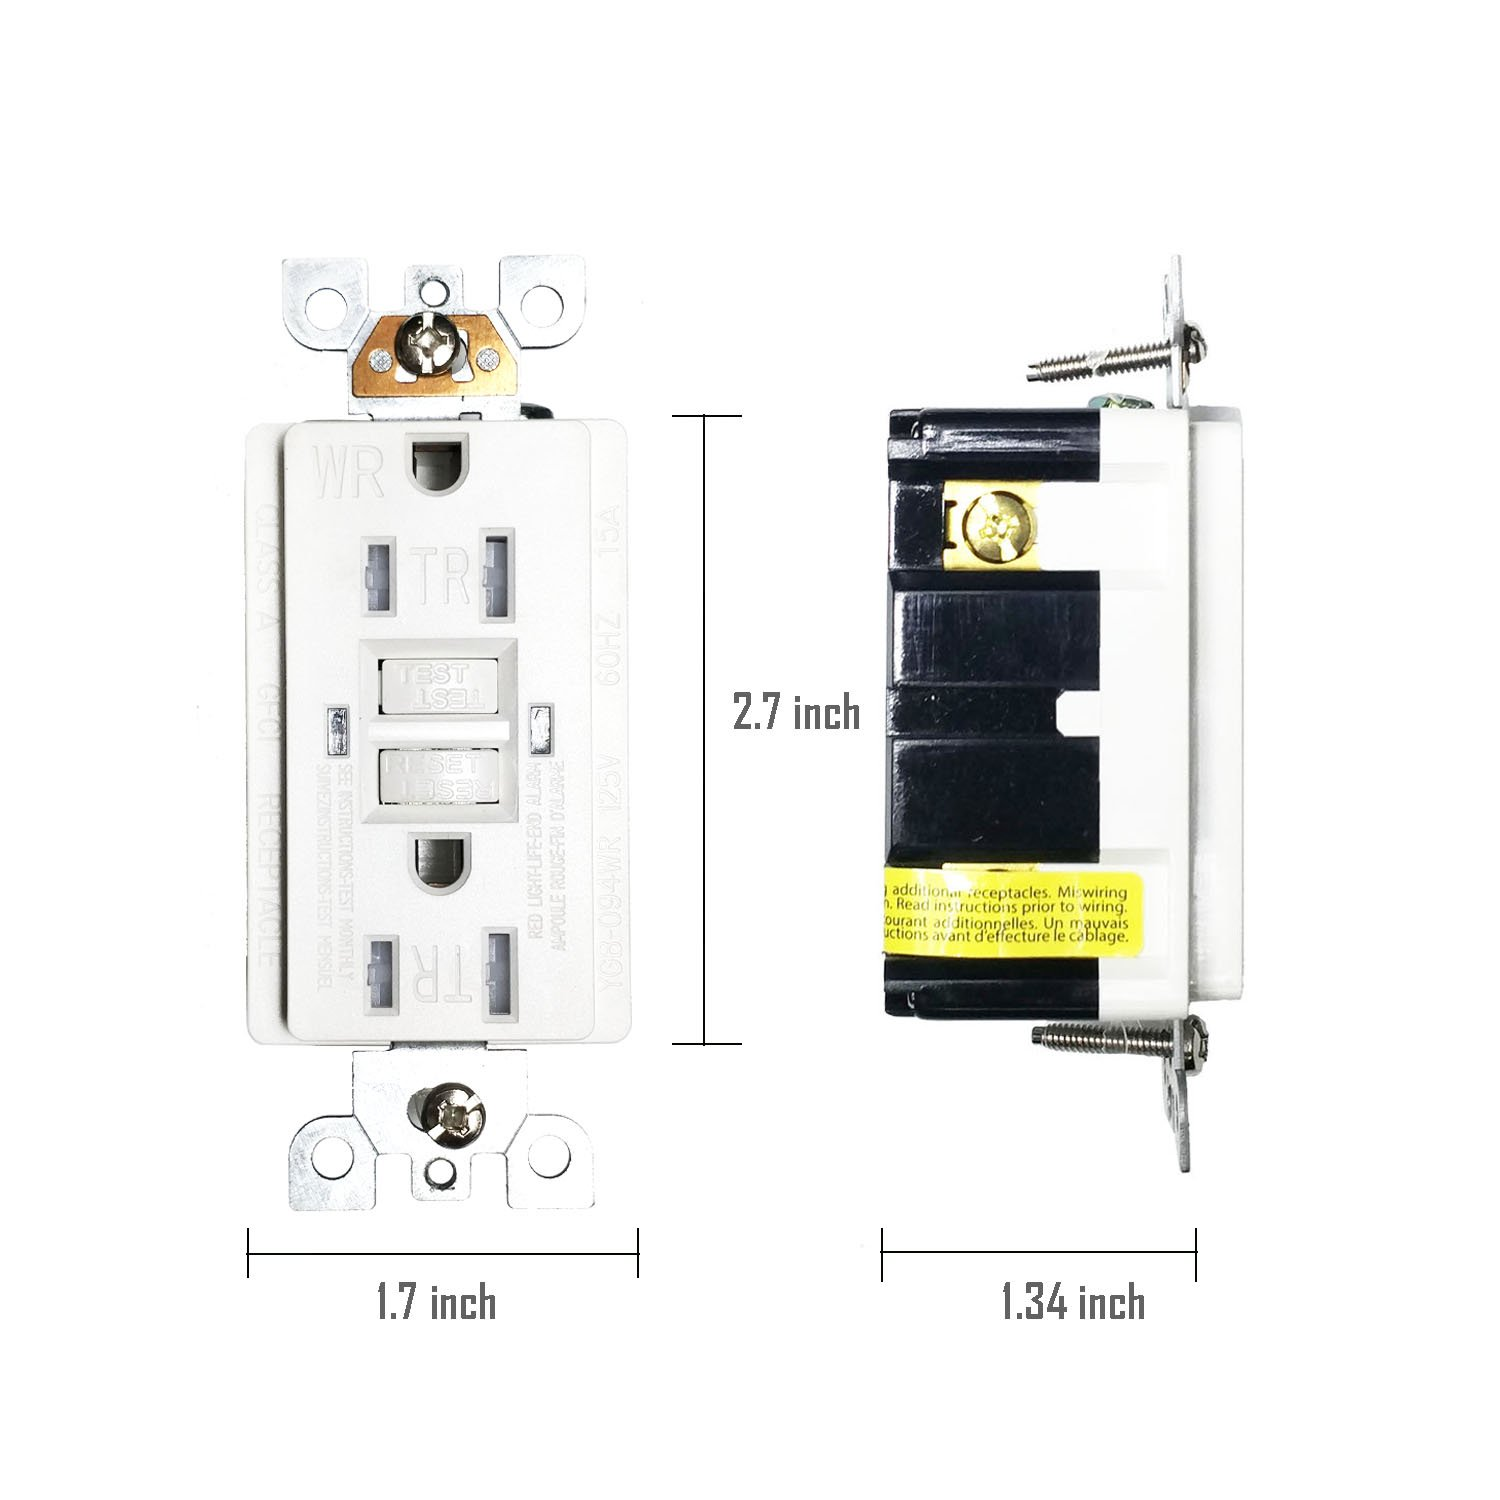 GFCI 15A TR WR Wall Outlet - LASOCKETS 15 Amp 125 Volt Tamper Resistant Socket For Standard Wall Receptacle Outlet, Residential Grade, Grounding, with Wall Plates, UL Listed (1 Pack) by LASOCKETS (Image #6)